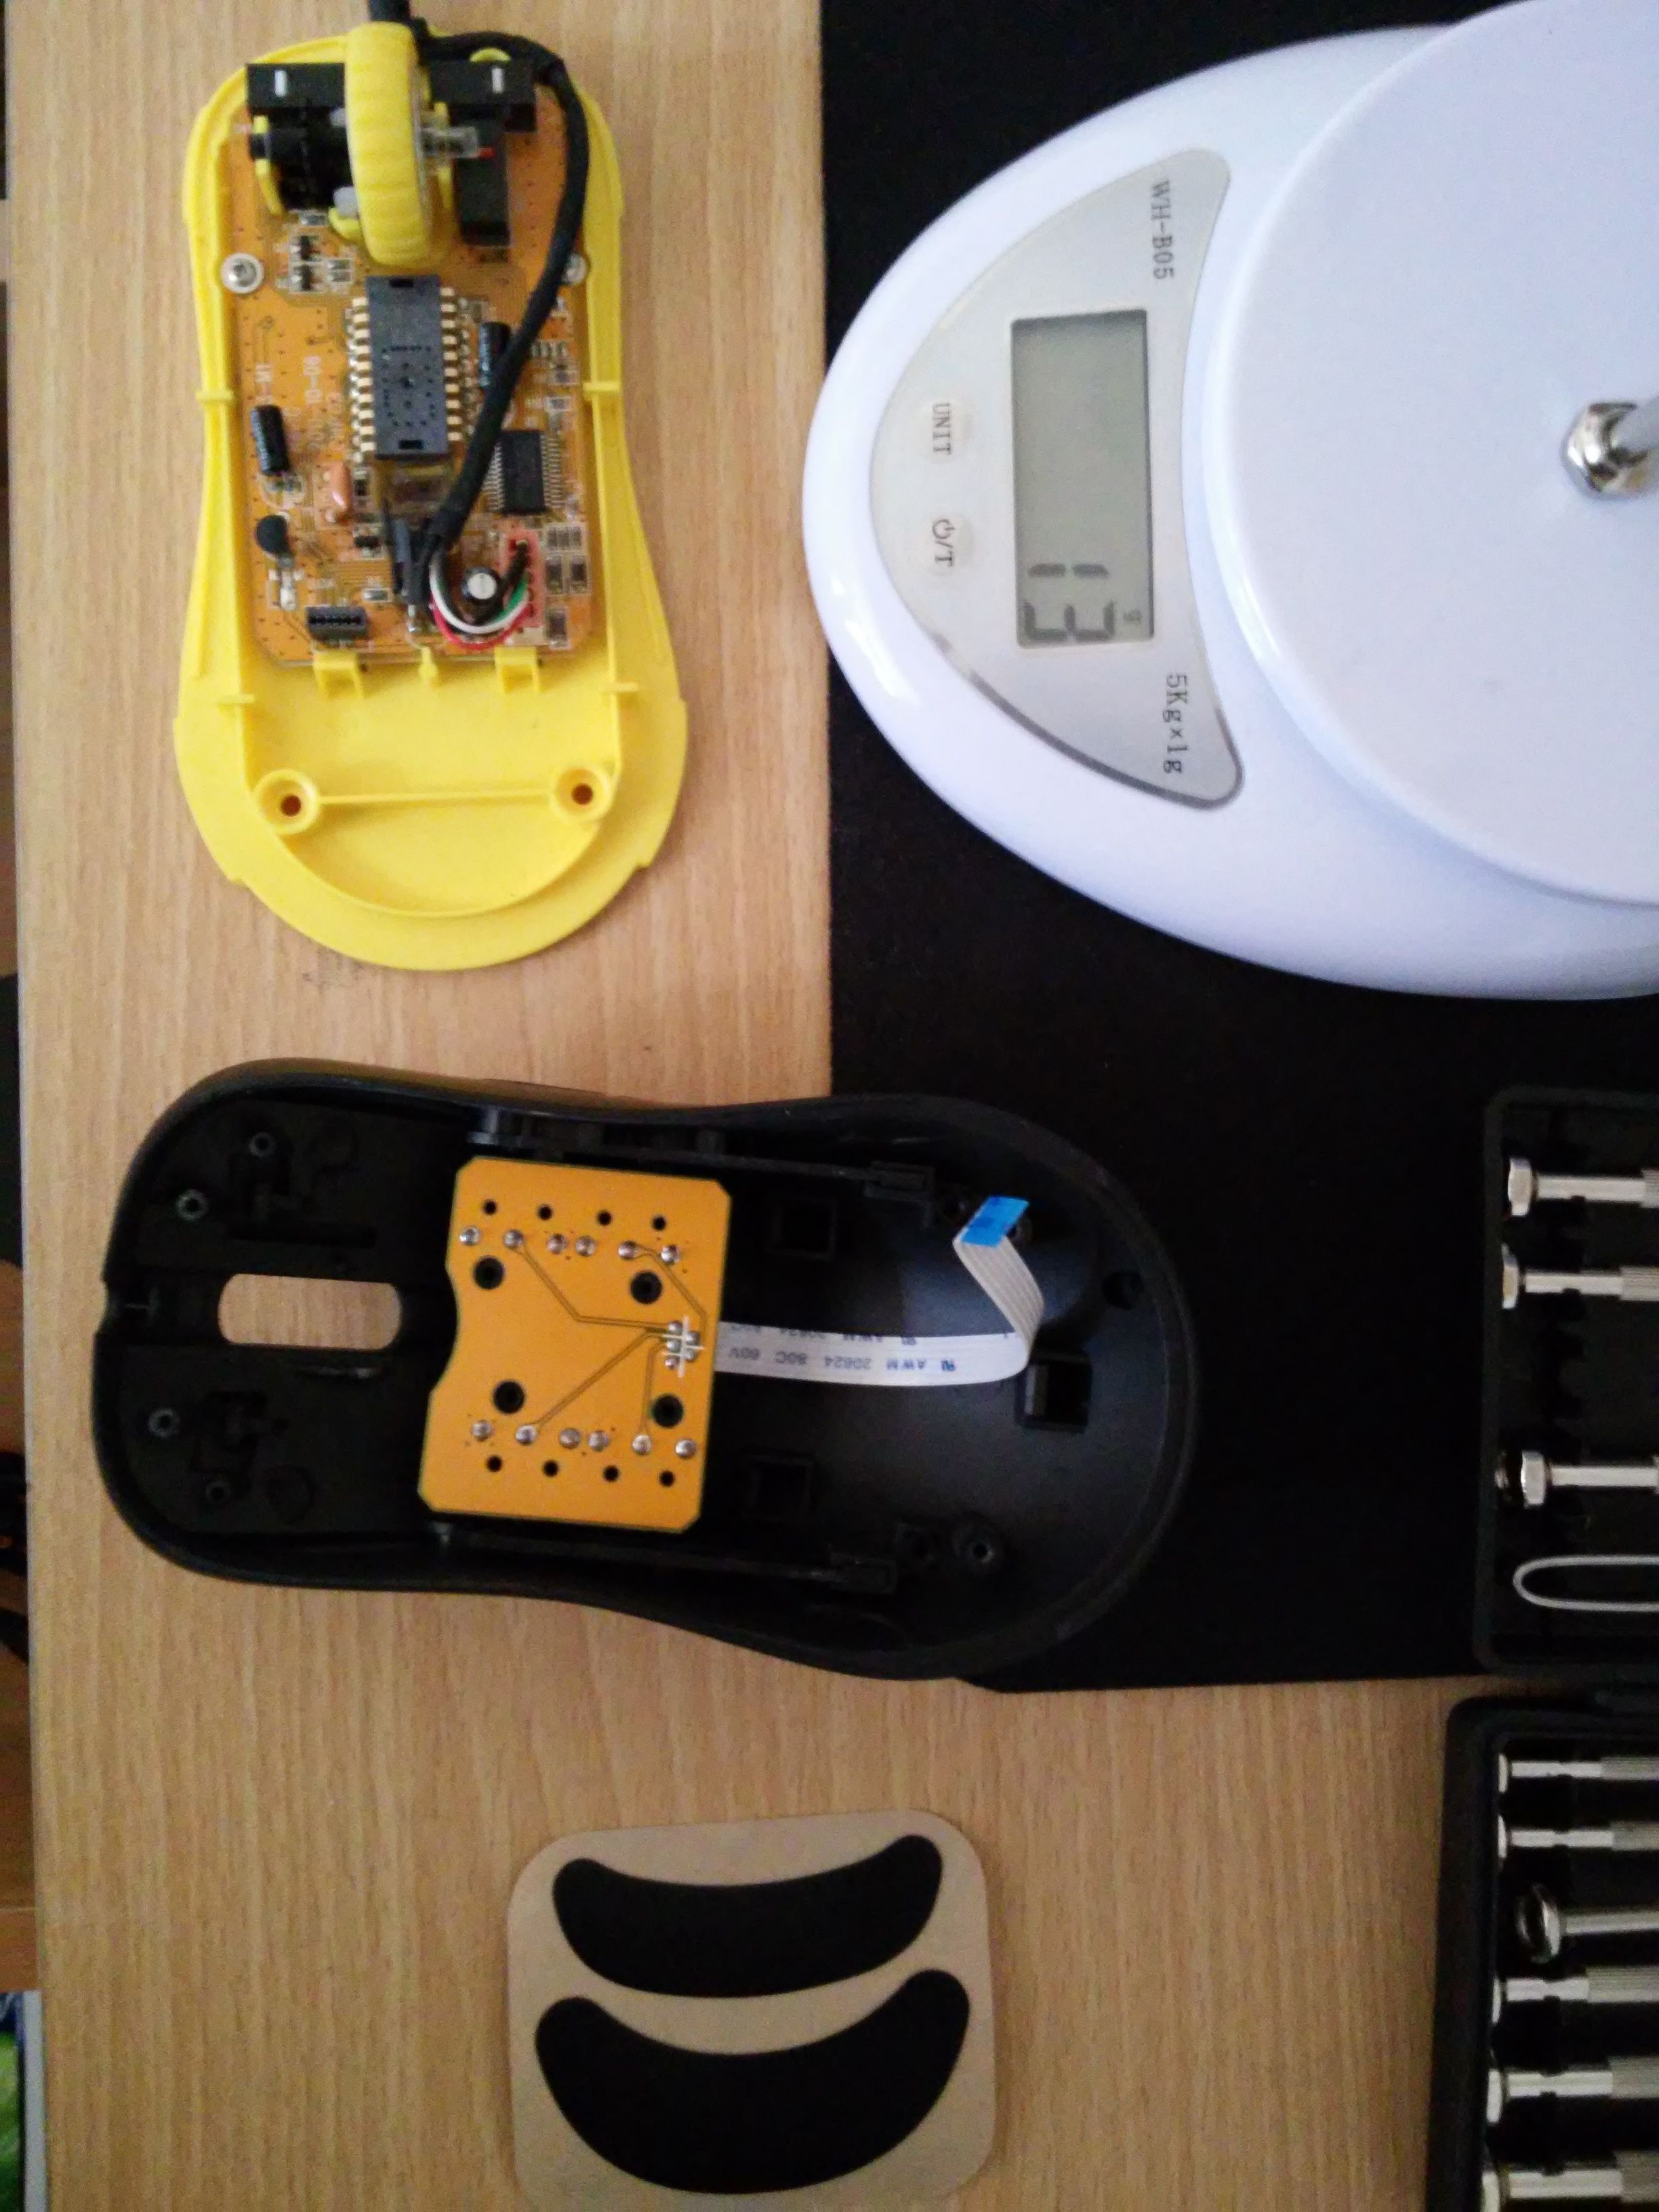 Zowie FK weight reduction to wmo/kinzu weight - Page 4 - Overclock